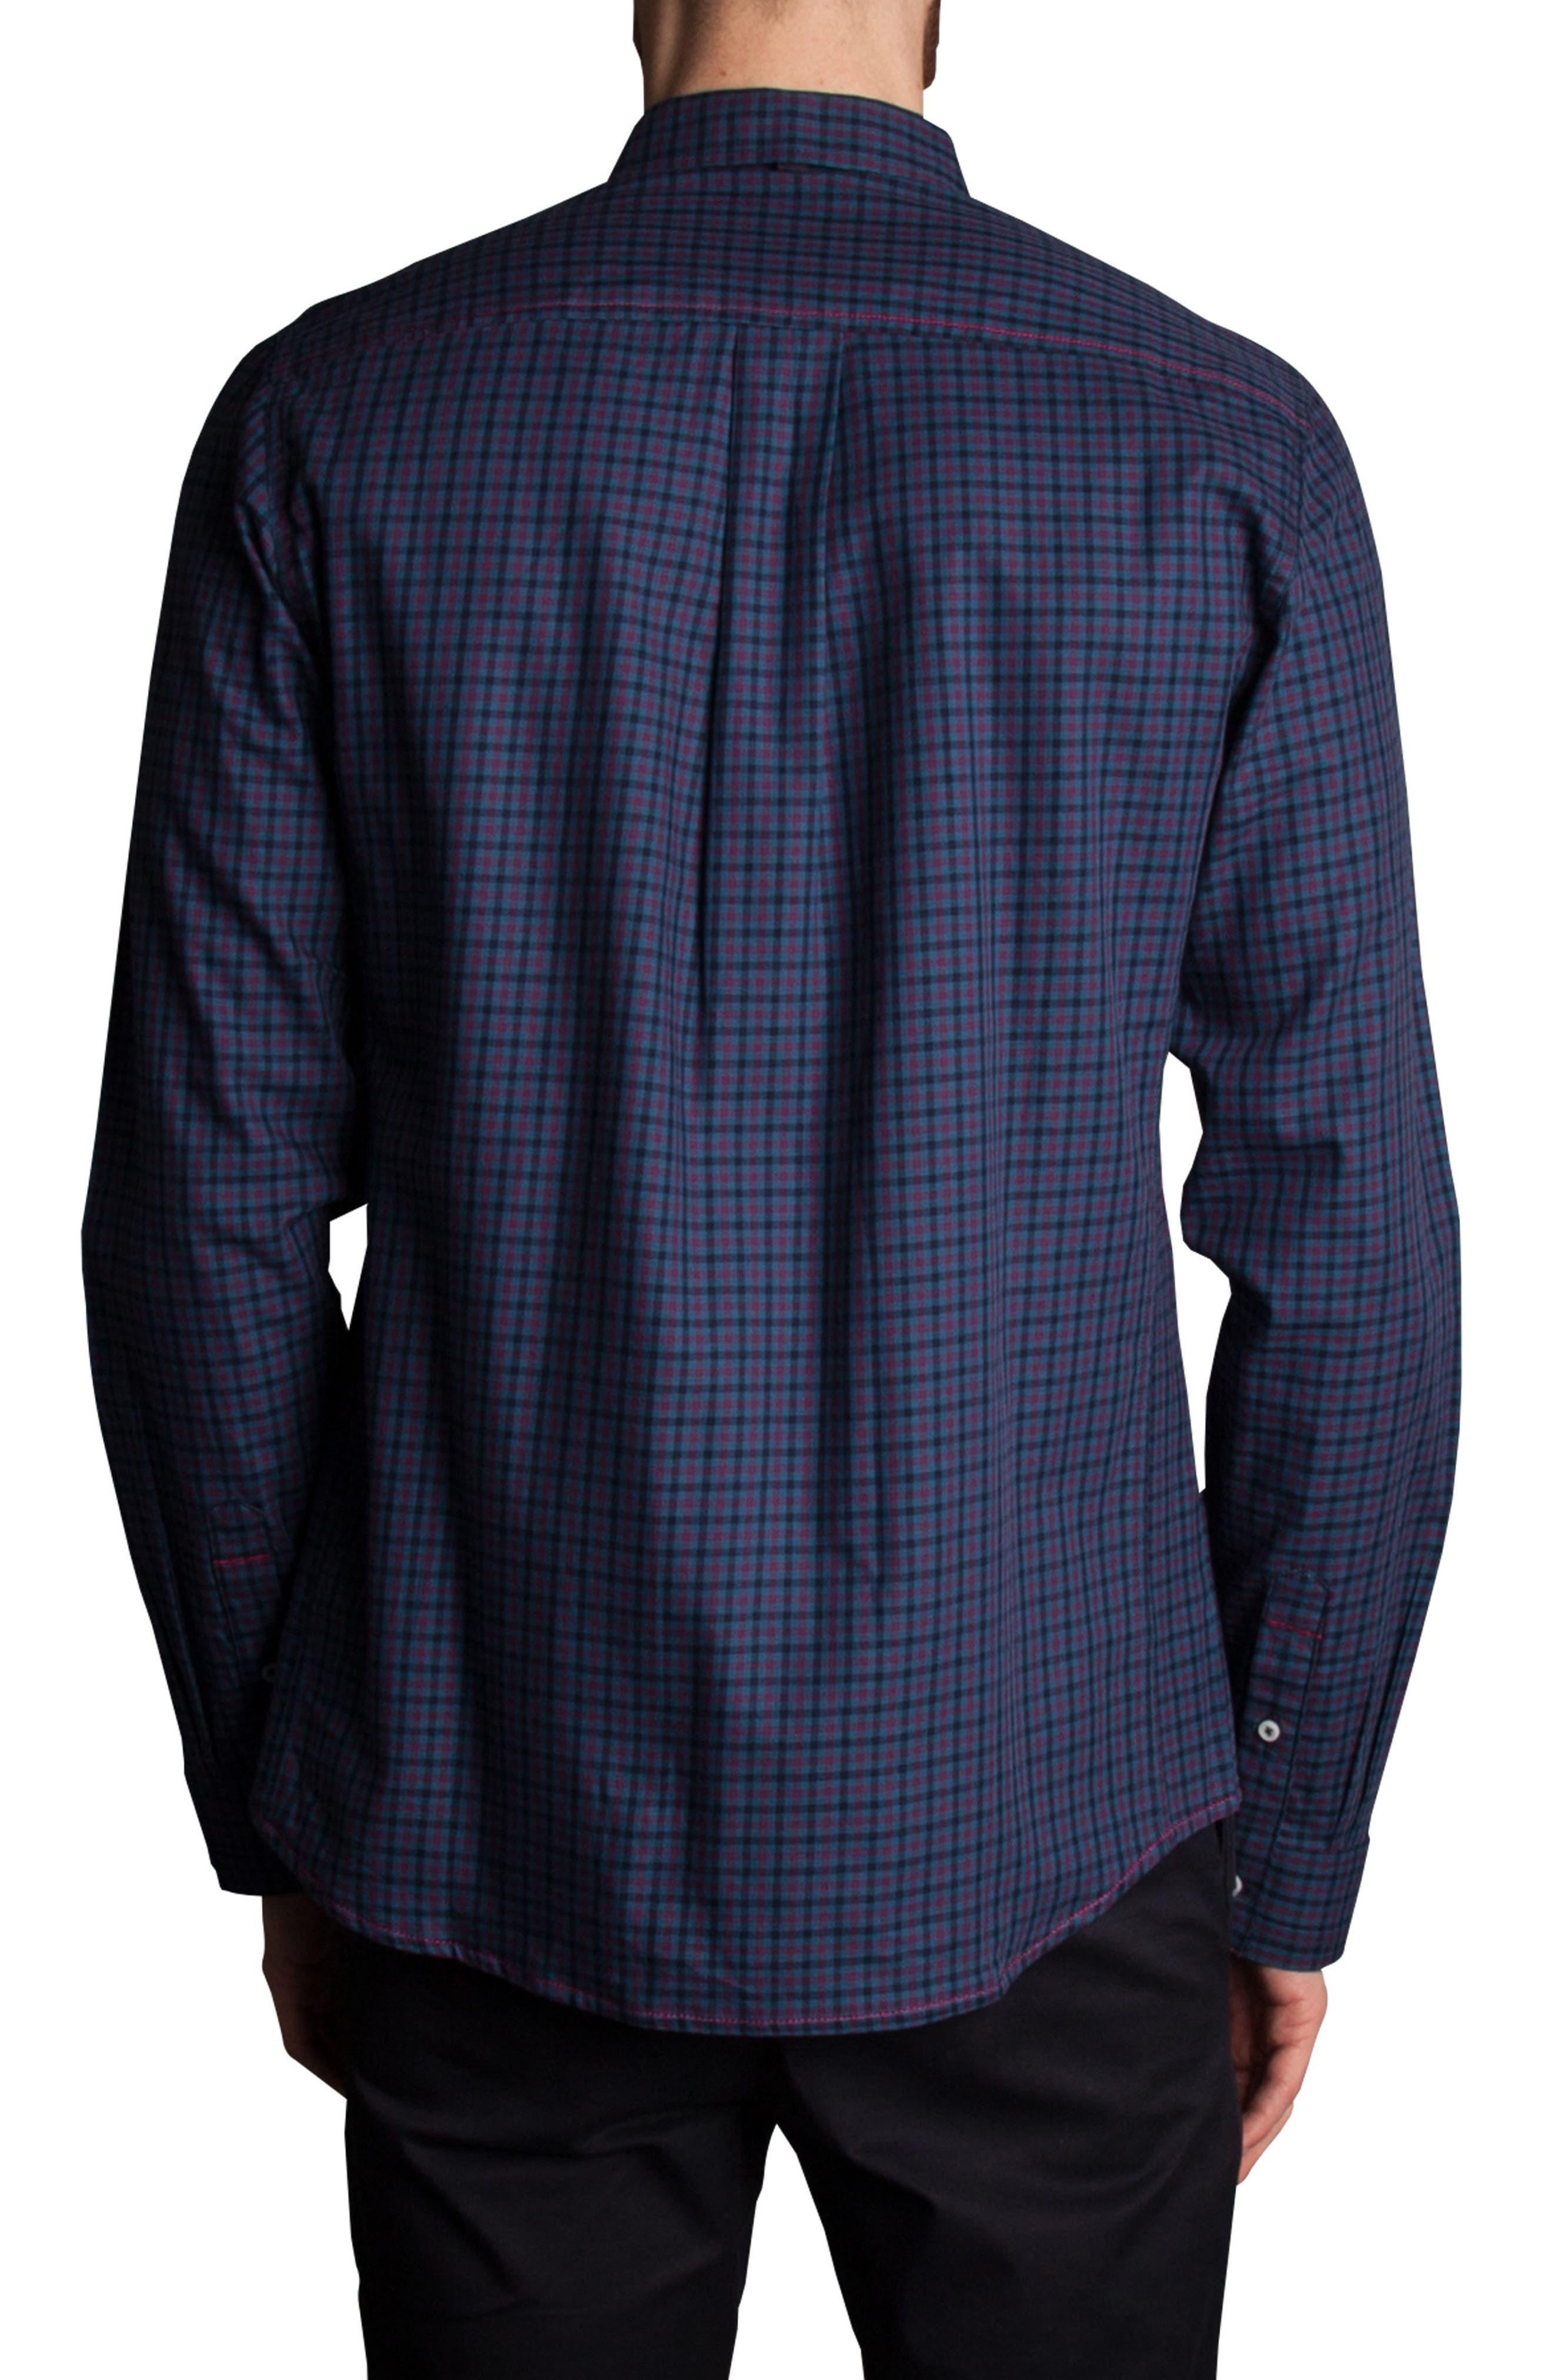 Inter Plaid Sport Shirt,                             Alternate thumbnail 2, color,                             Navy